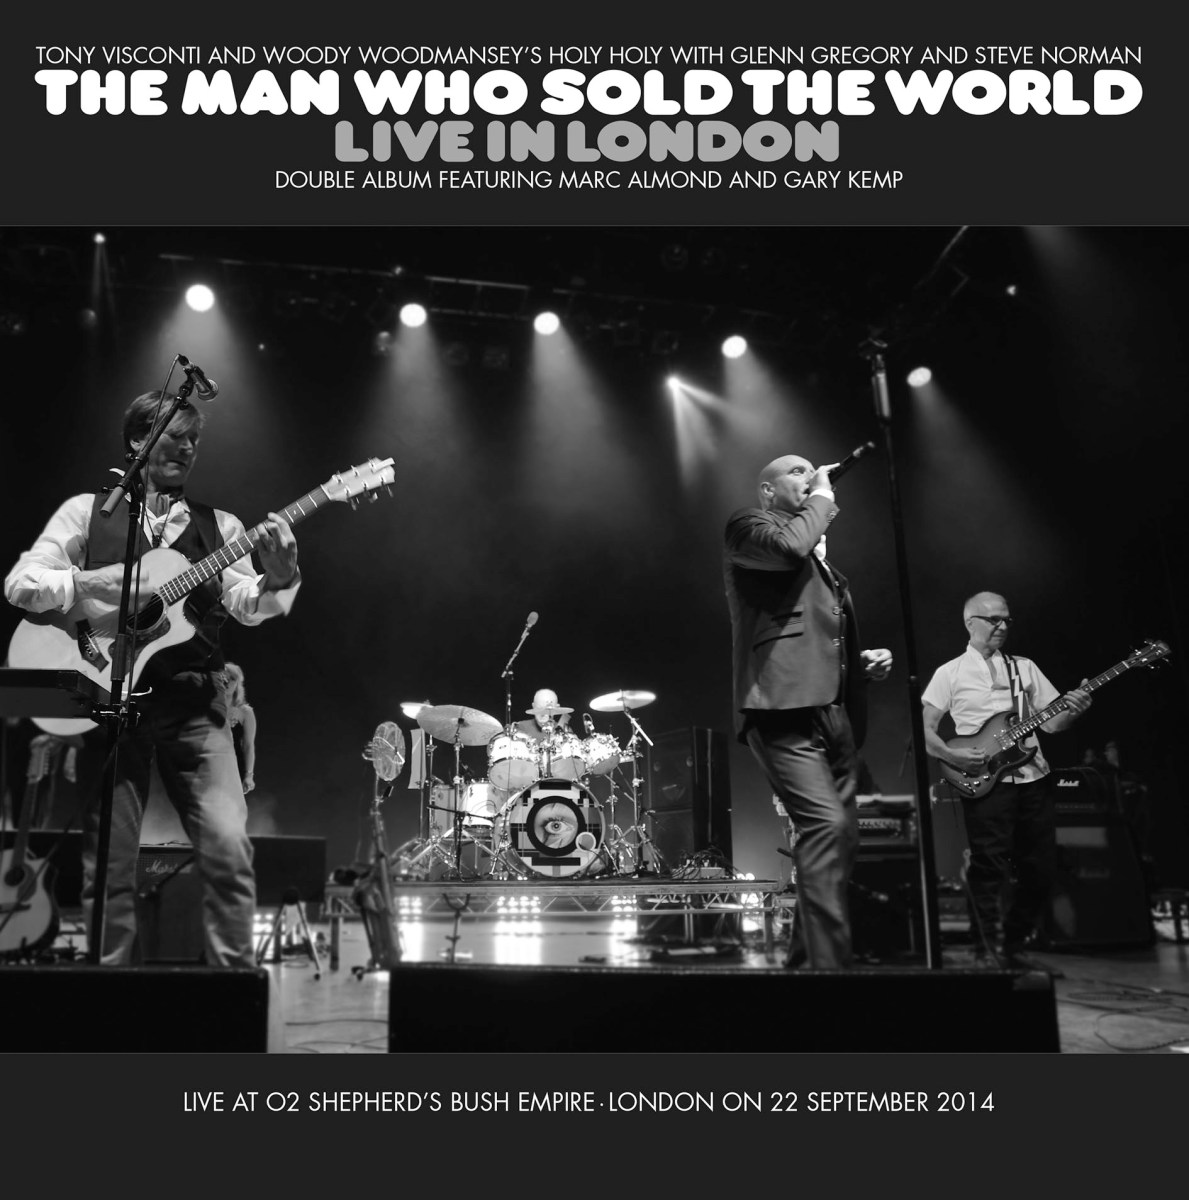 The Man Who Sold The World Live in London - Tony Visconti & Woody Woodmansey's Holy Holy